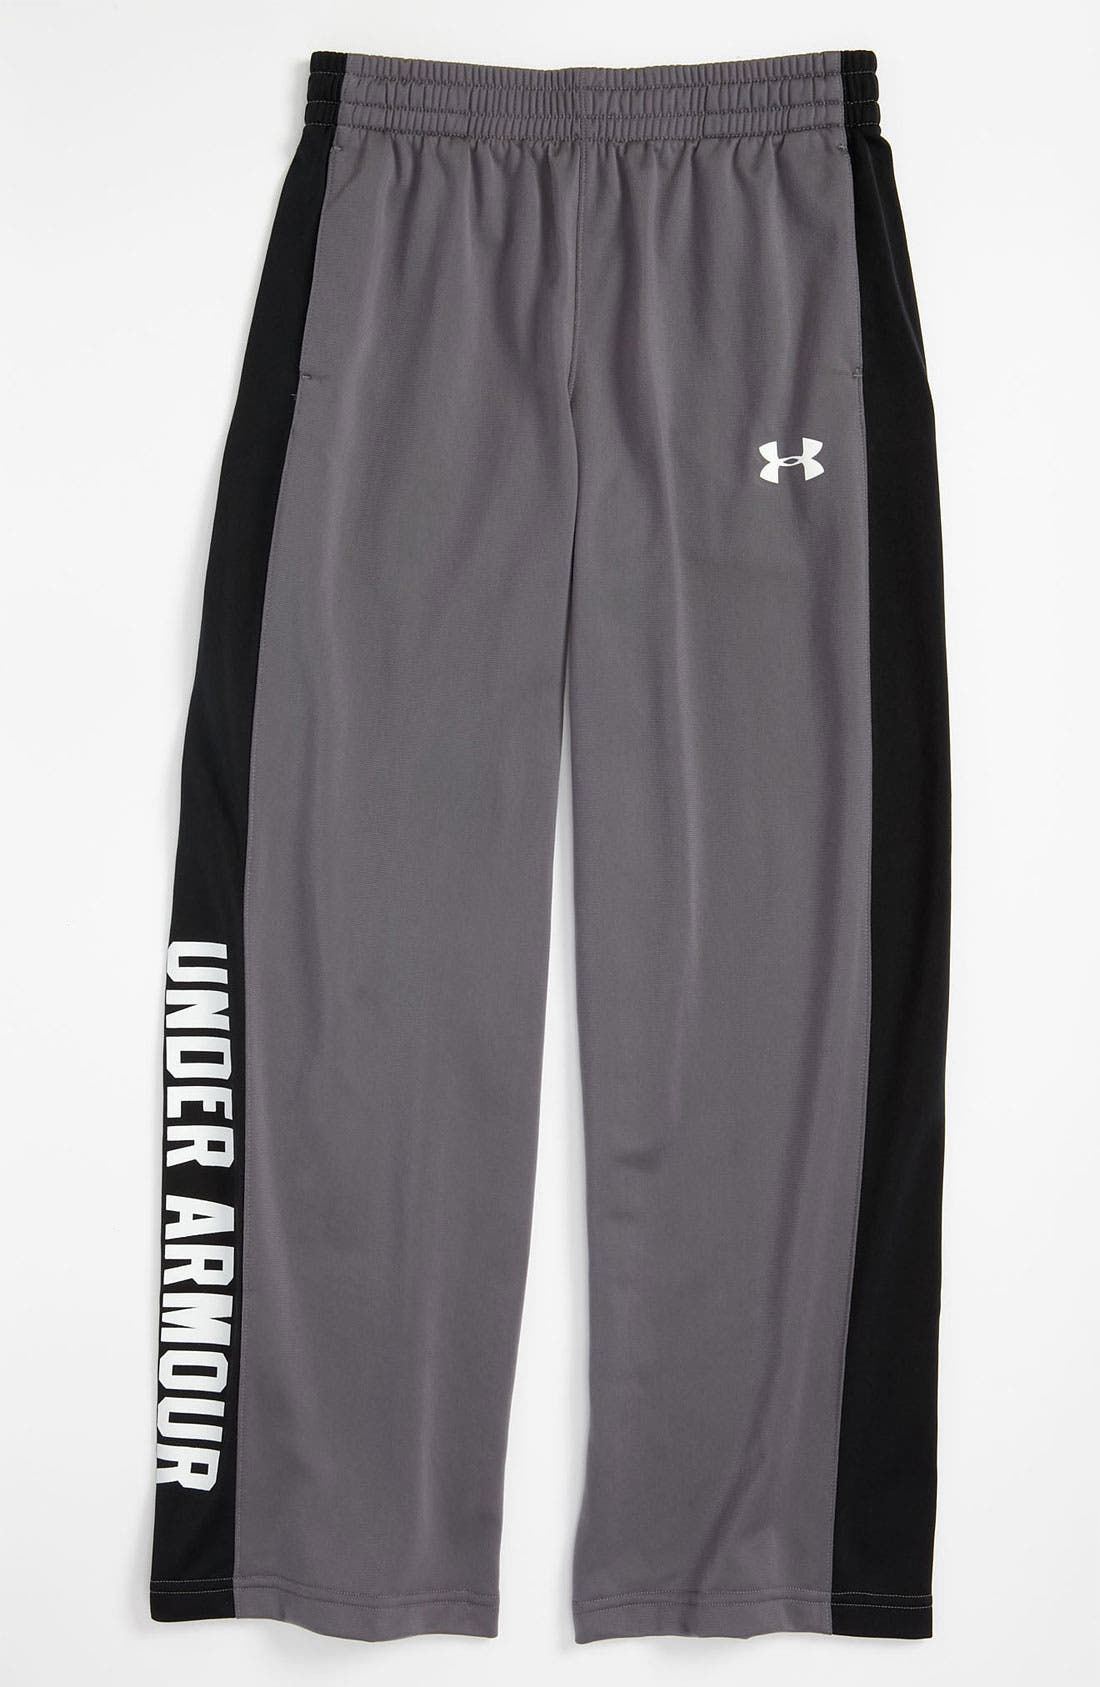 Alternate Image 1 Selected - Under Armour 'Brawler' Pants (Big Boys)